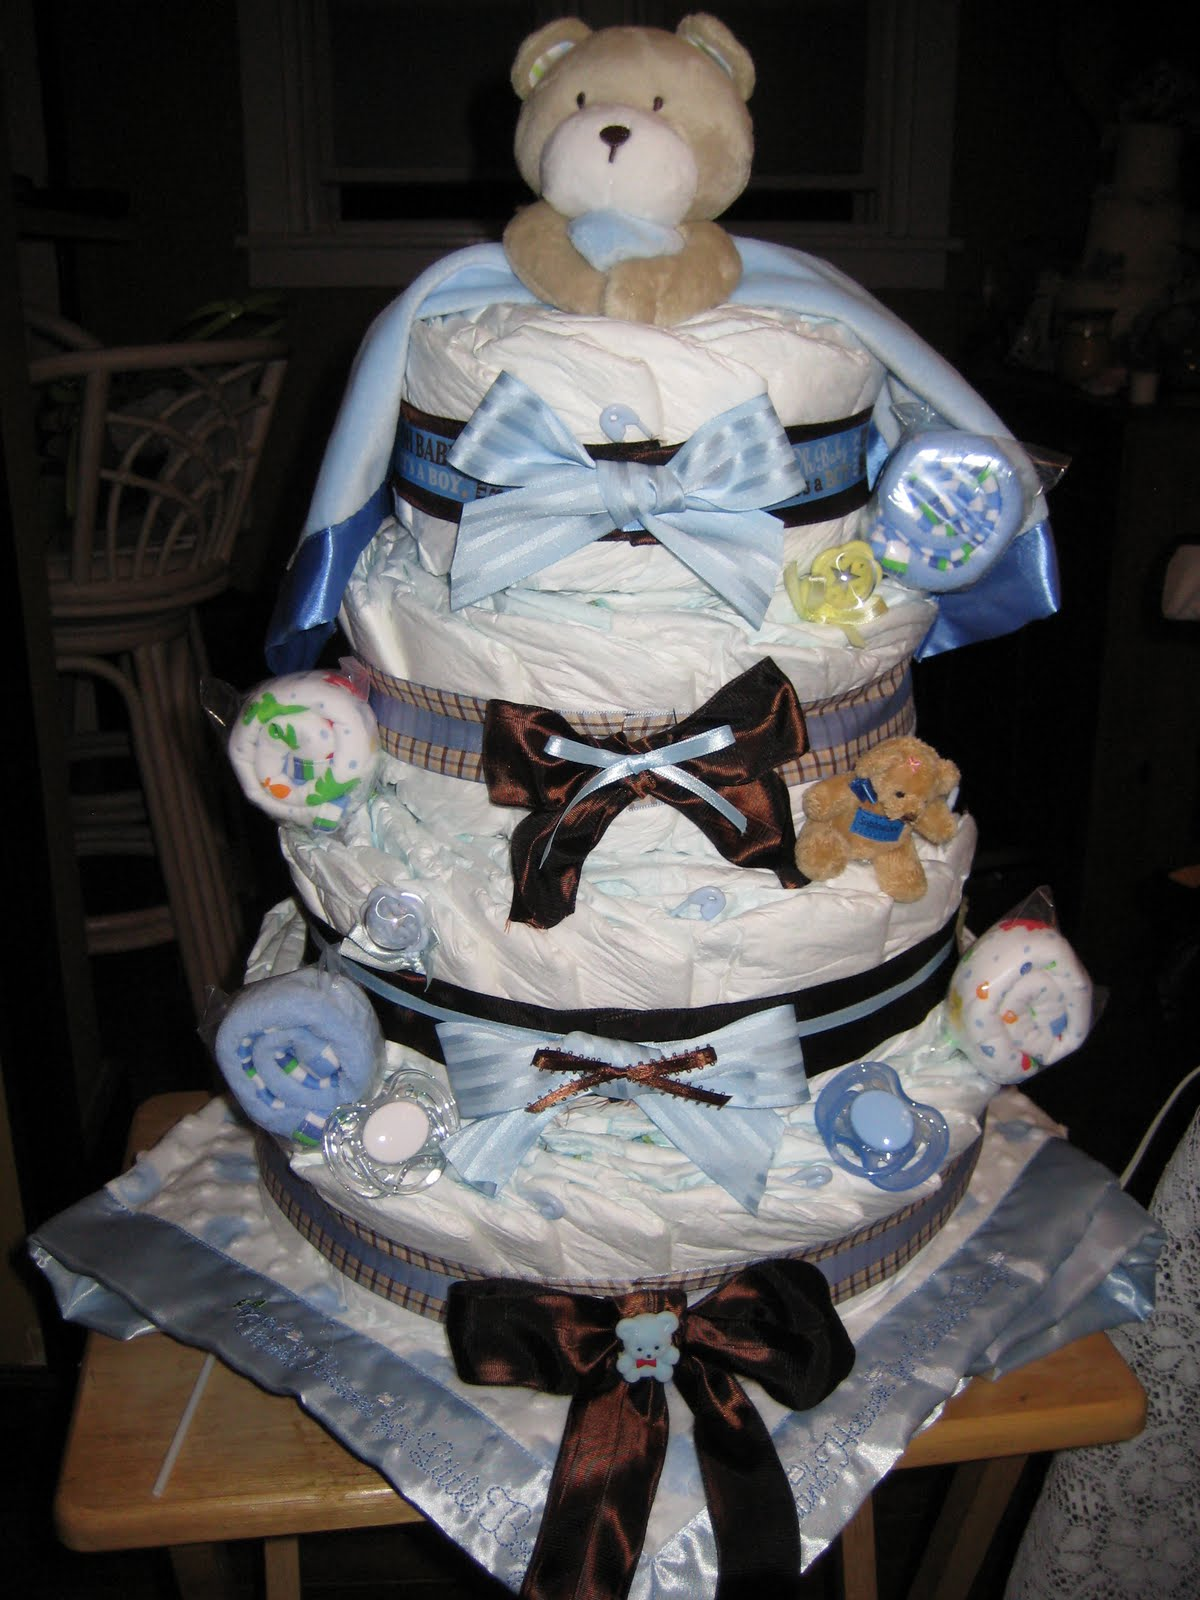 Diaper Cakes A Practical Gift For Any Expectant Parents